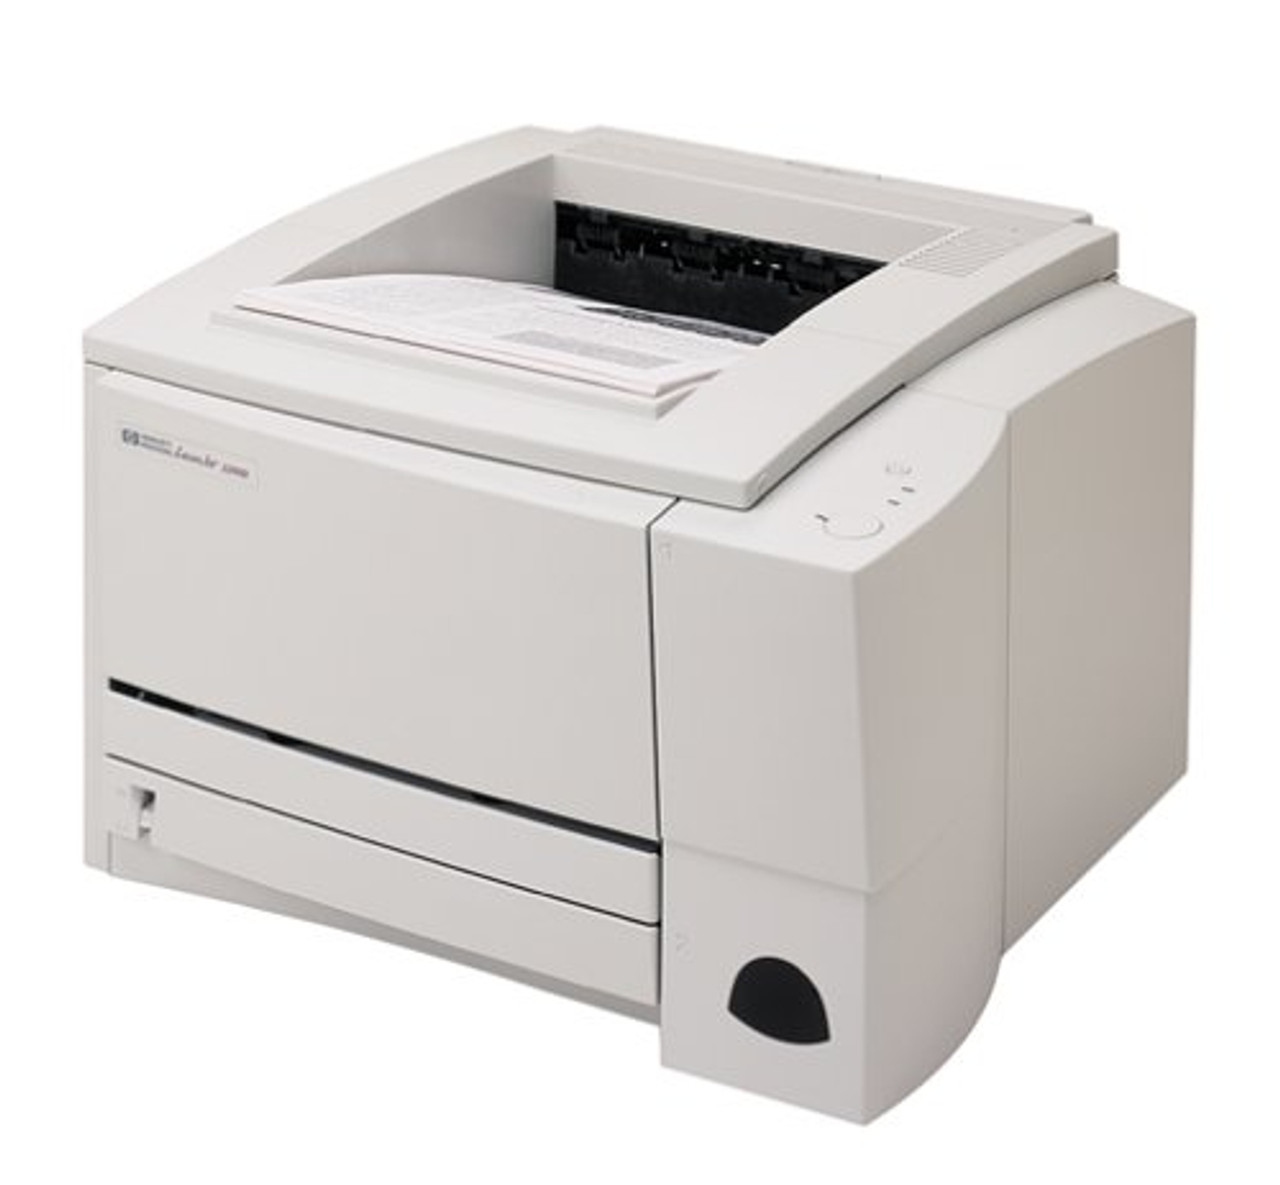 HP LaserJet 2200 Laser Printer